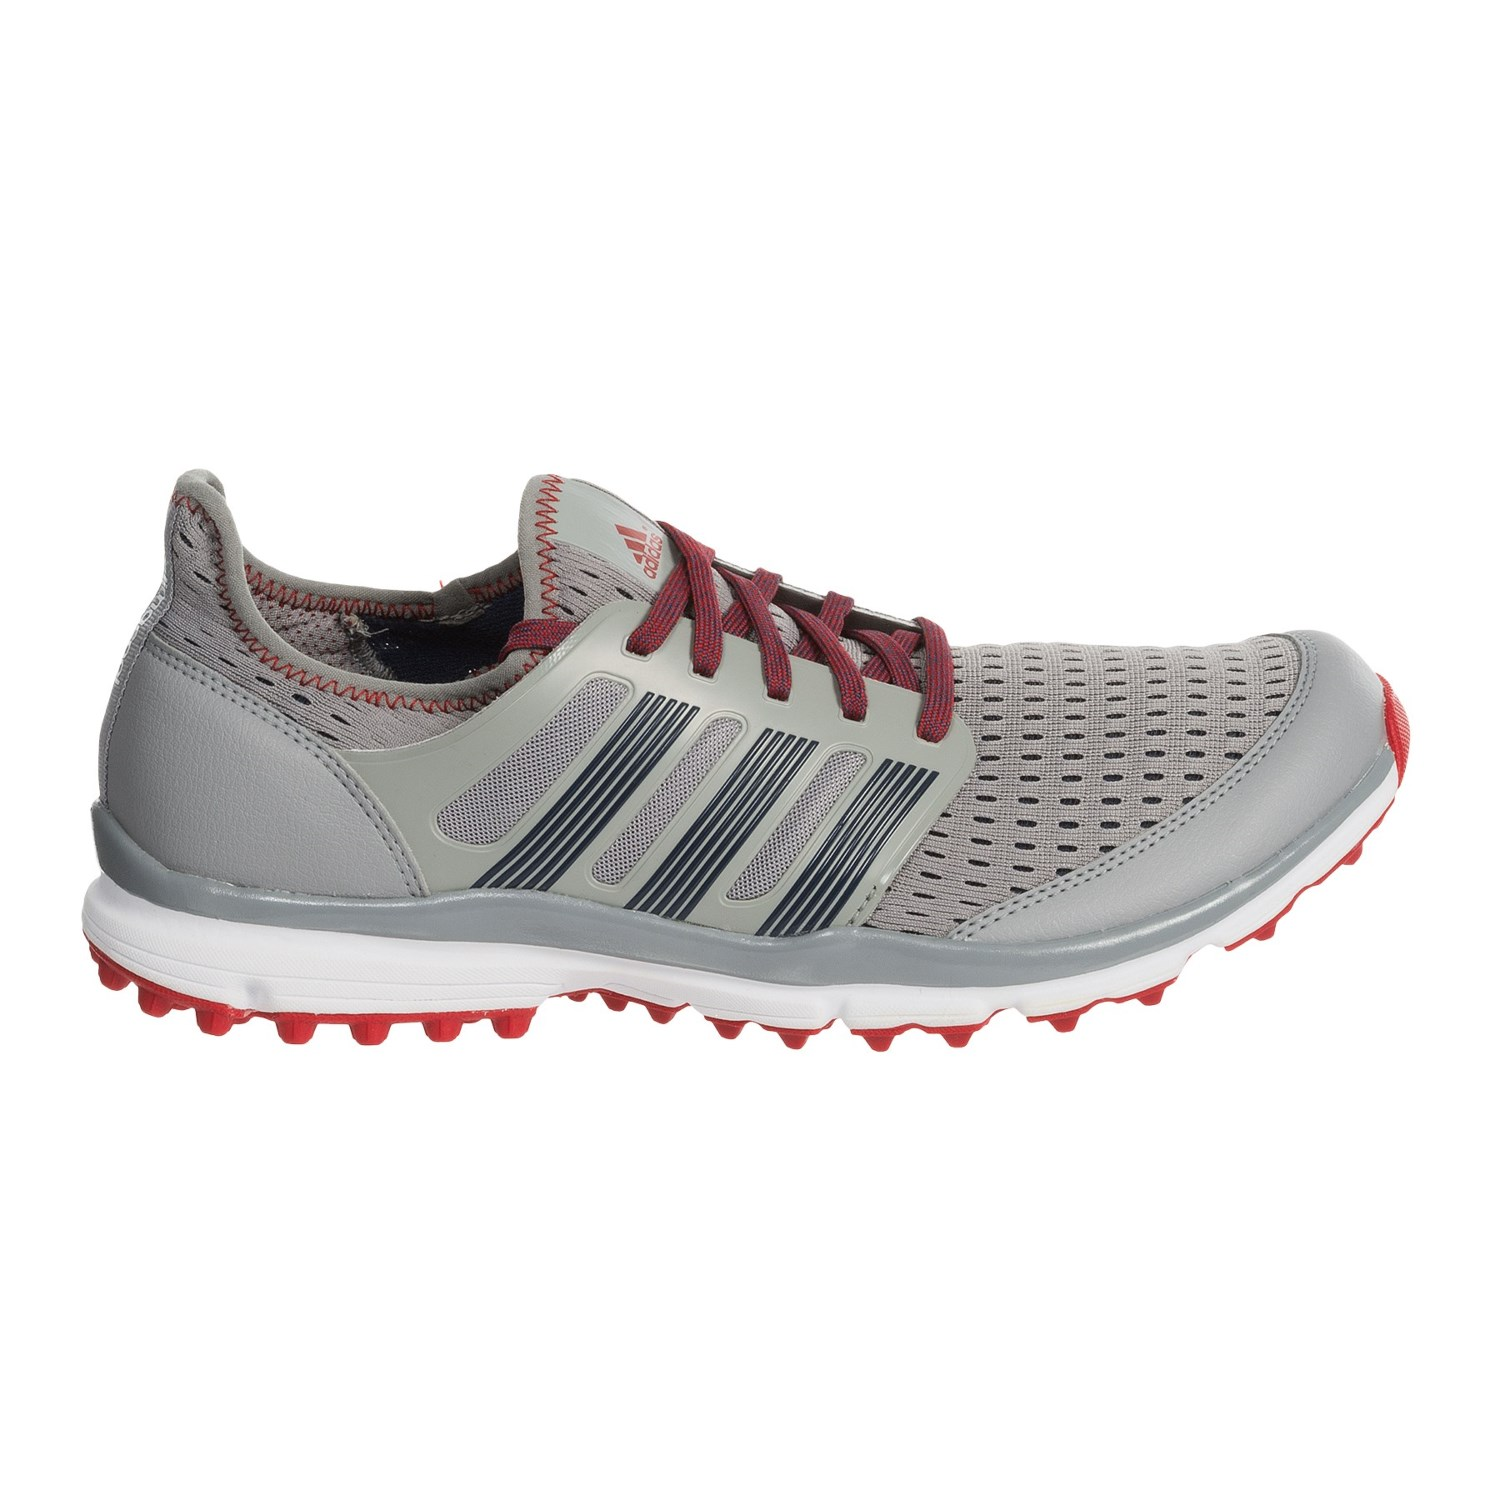 Adidas Climacool Shoes Grey White And Red